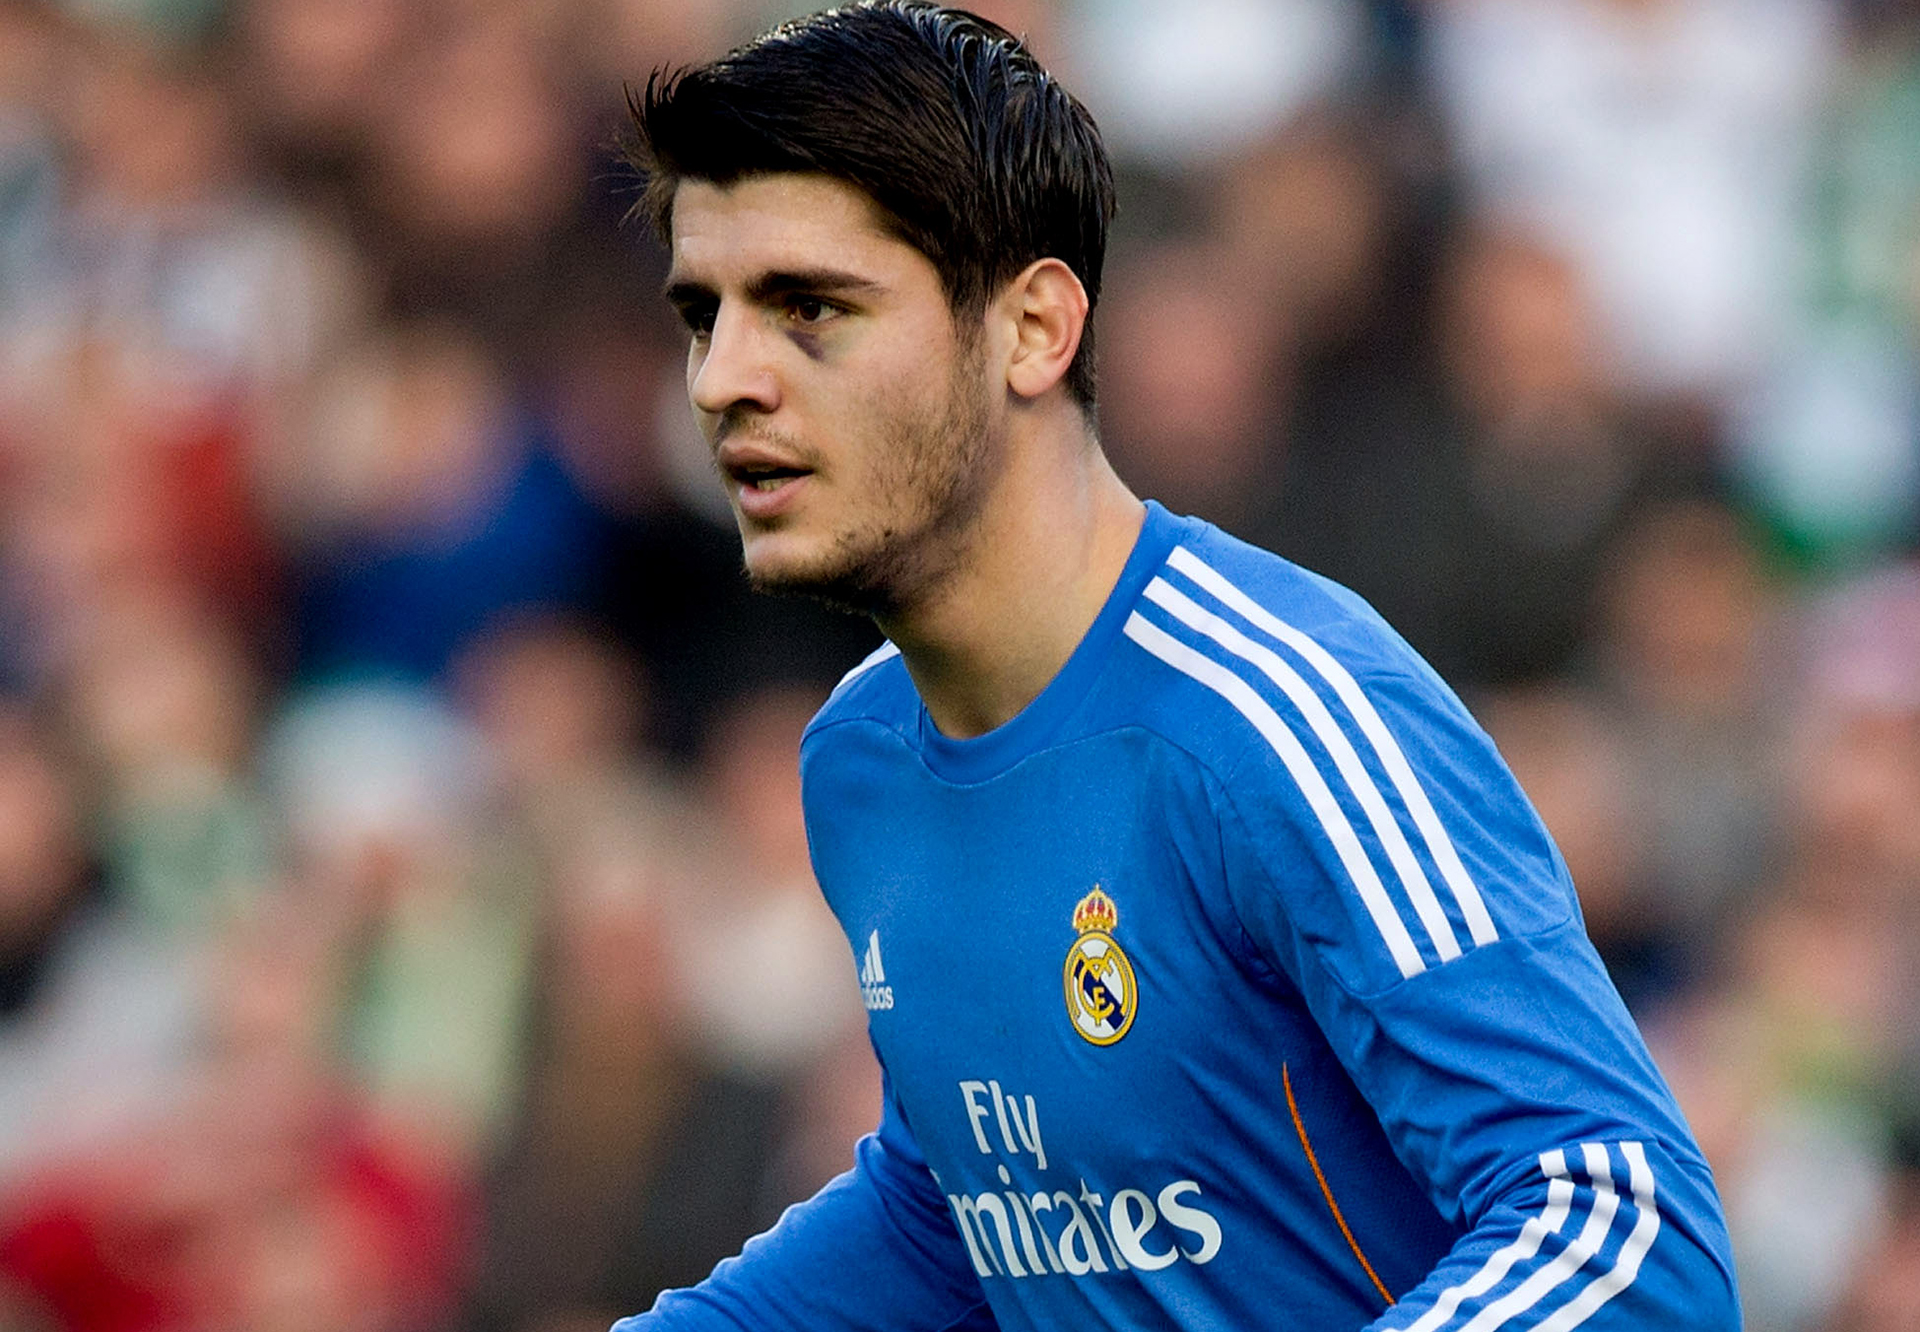 Real Madrid coach Zidane expects Alvaro Morata